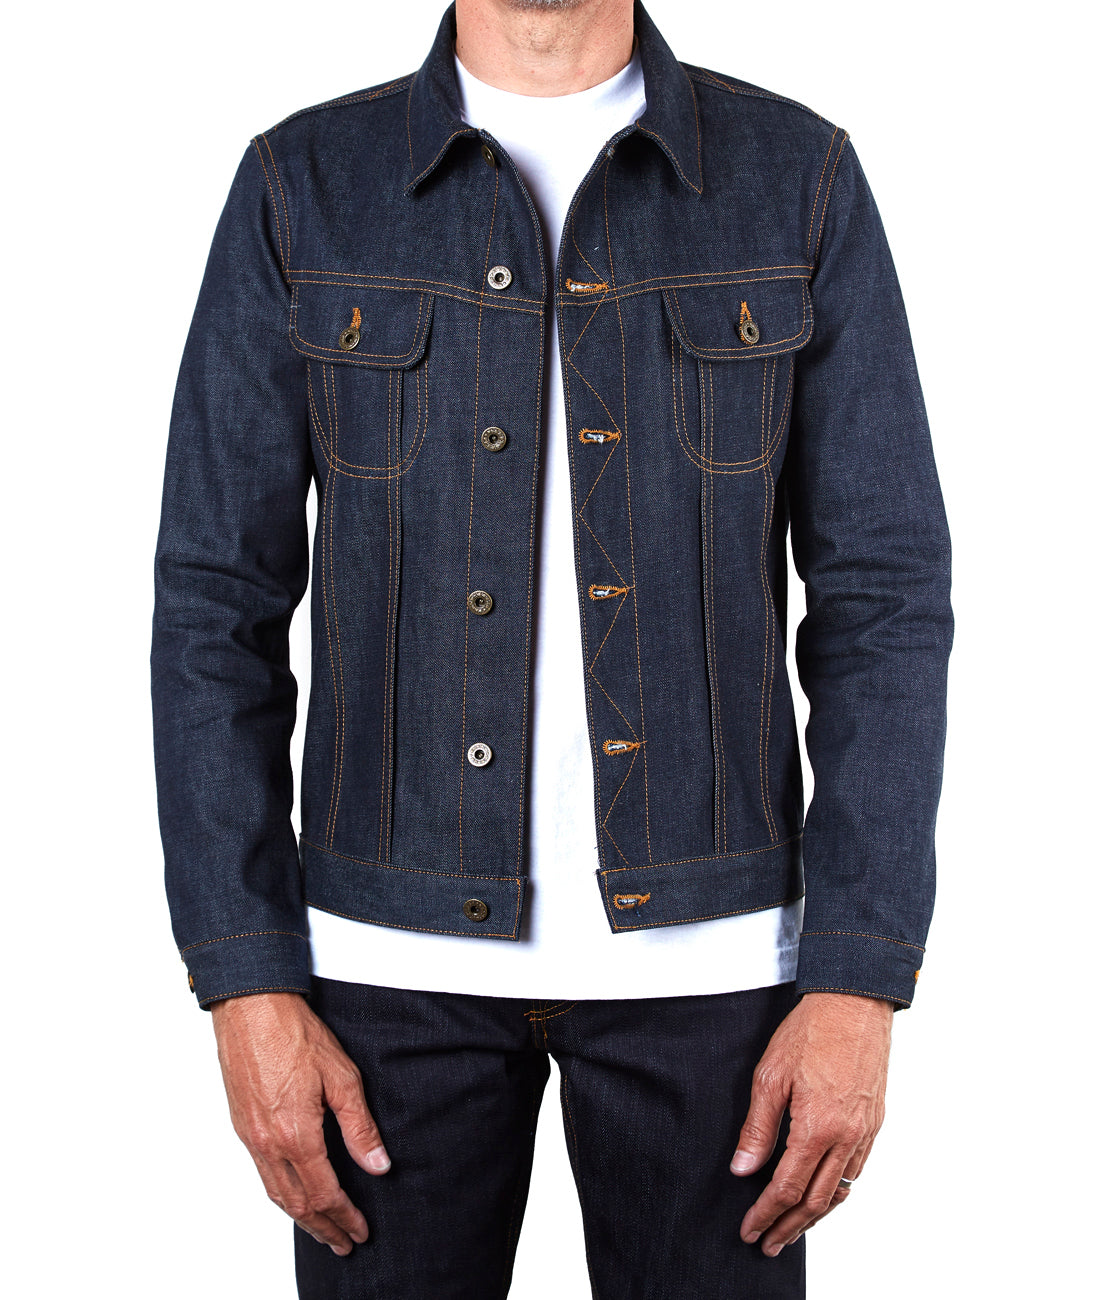 The Steadfast 12.5oz 'Imperial' Japan Selvage Denim Jacket